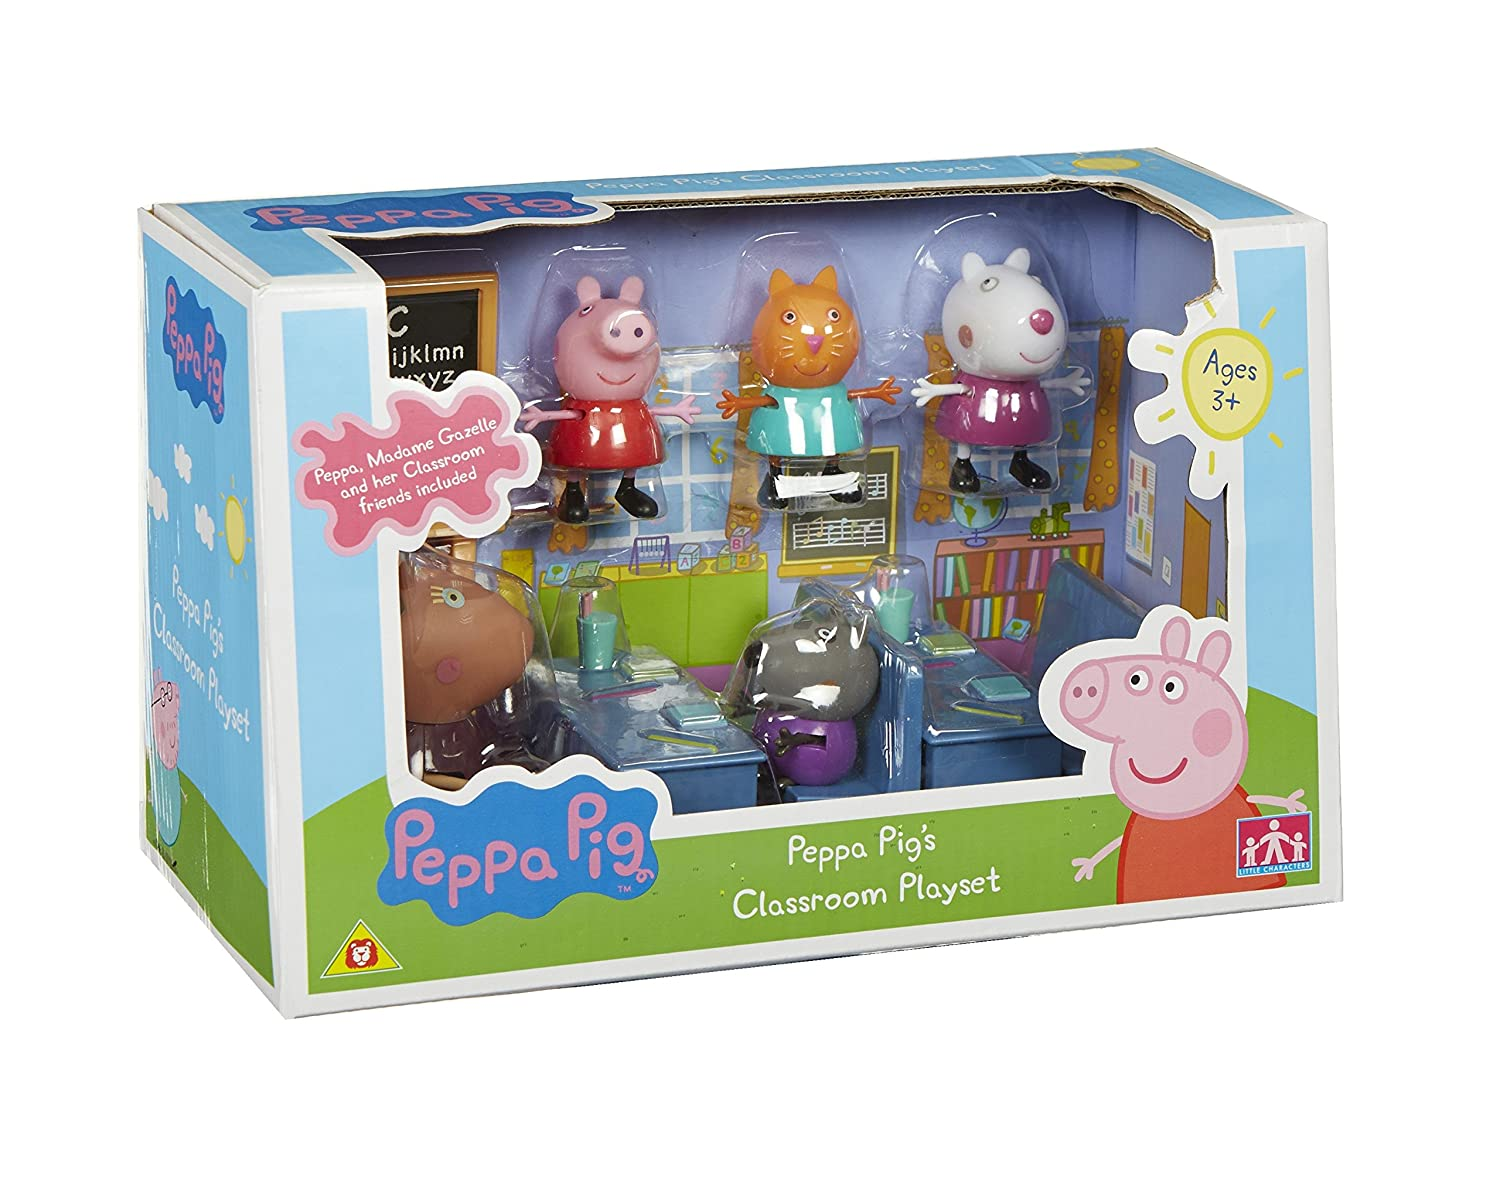 Best Peppa Pig Toys : Top best peppa pig playsets and toys  on flipboard